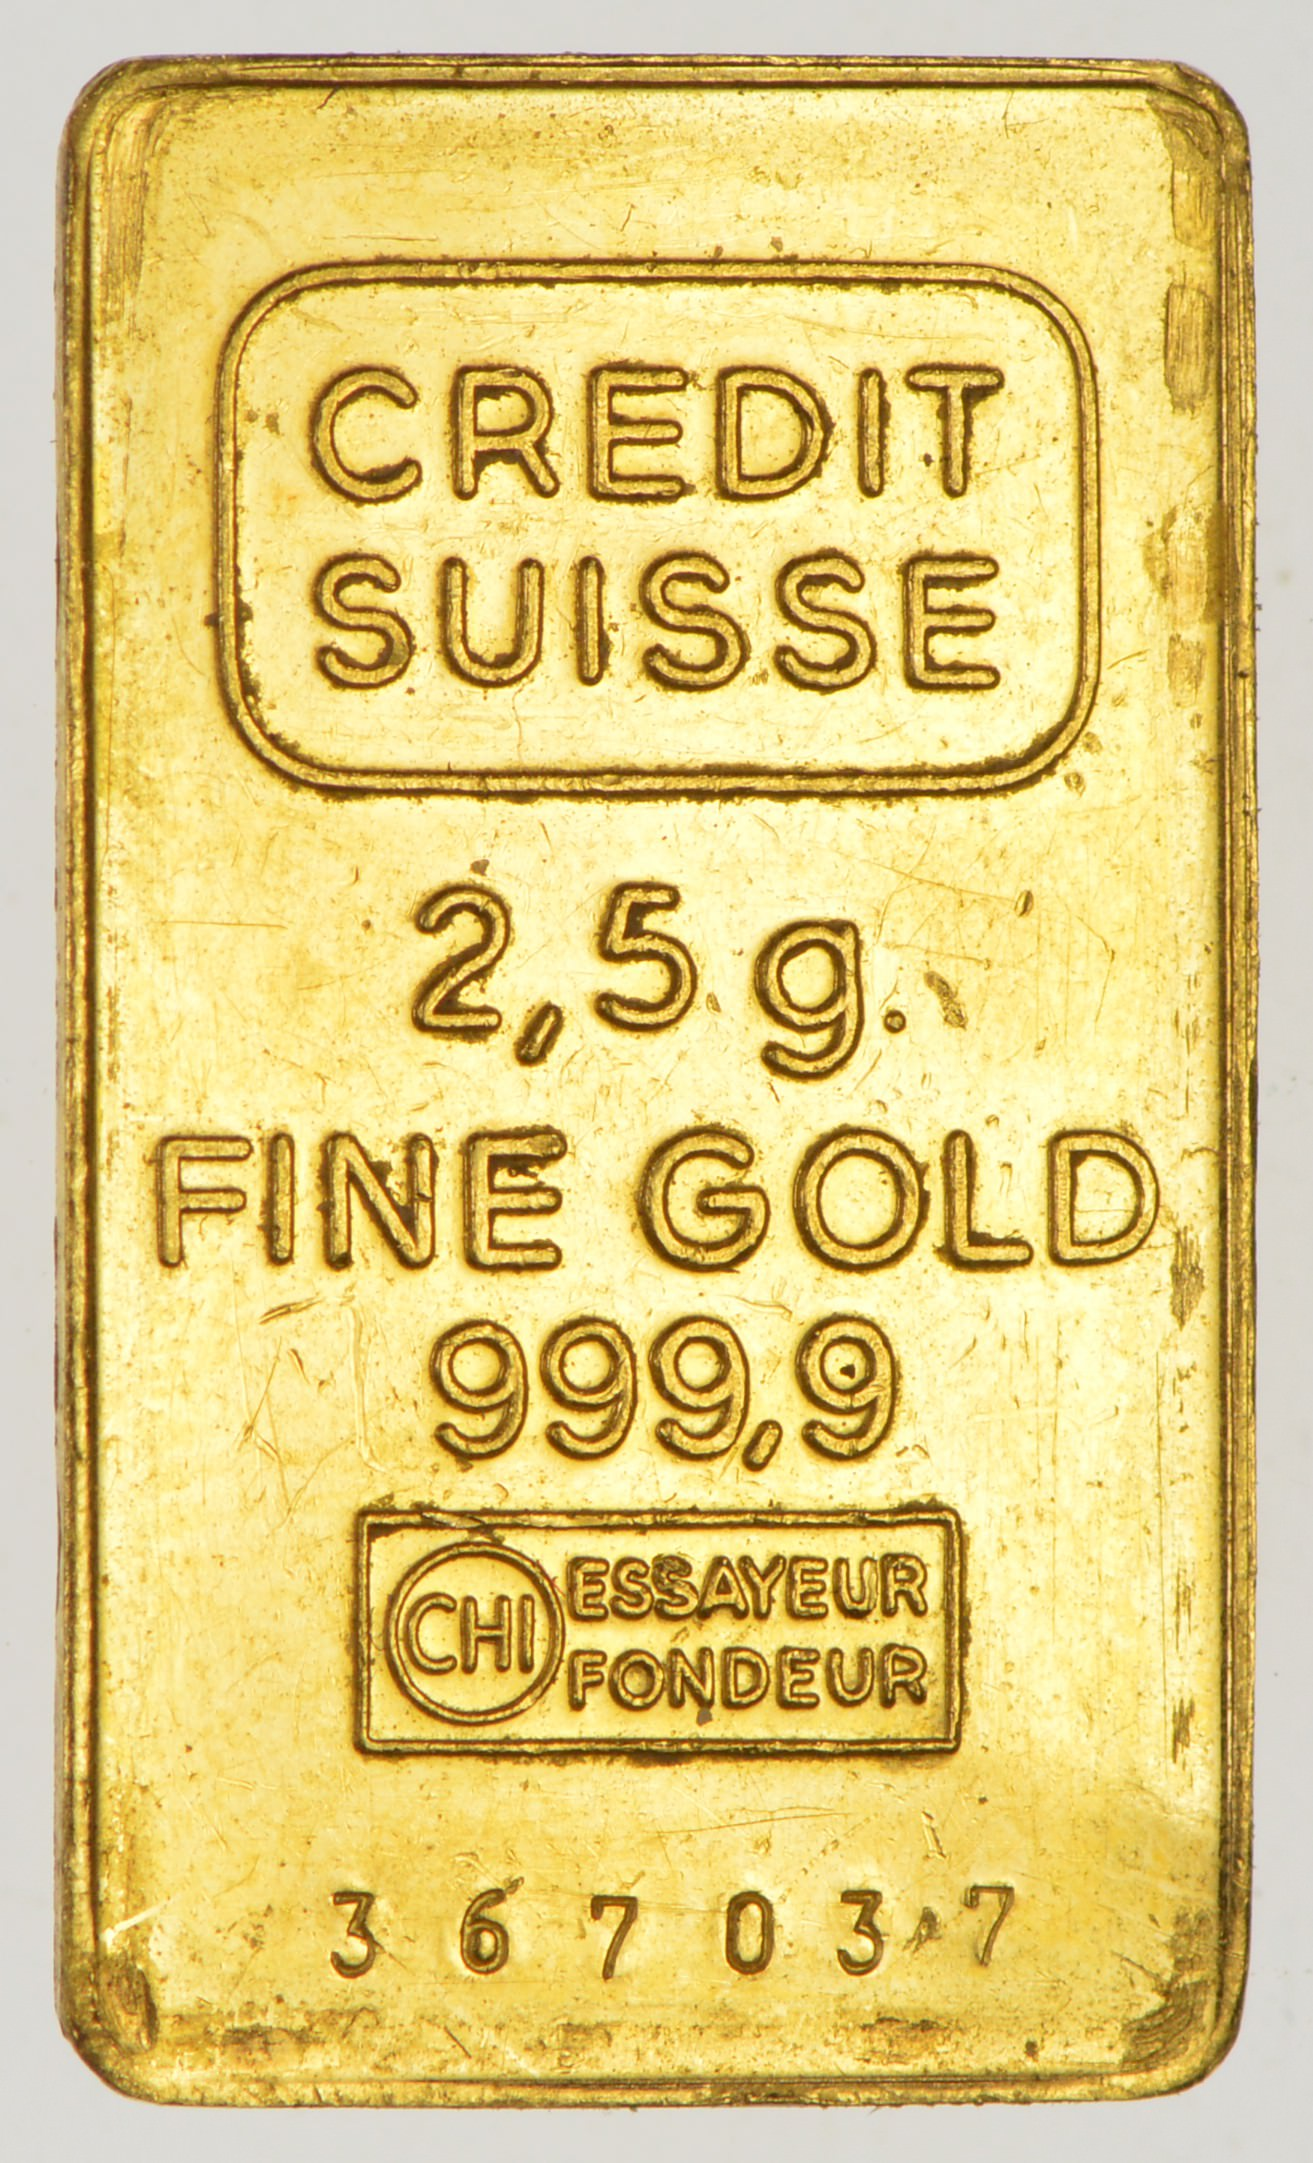 Credit Suisse 999 9 Fine Gold Bar 2 5 Grams Property Room